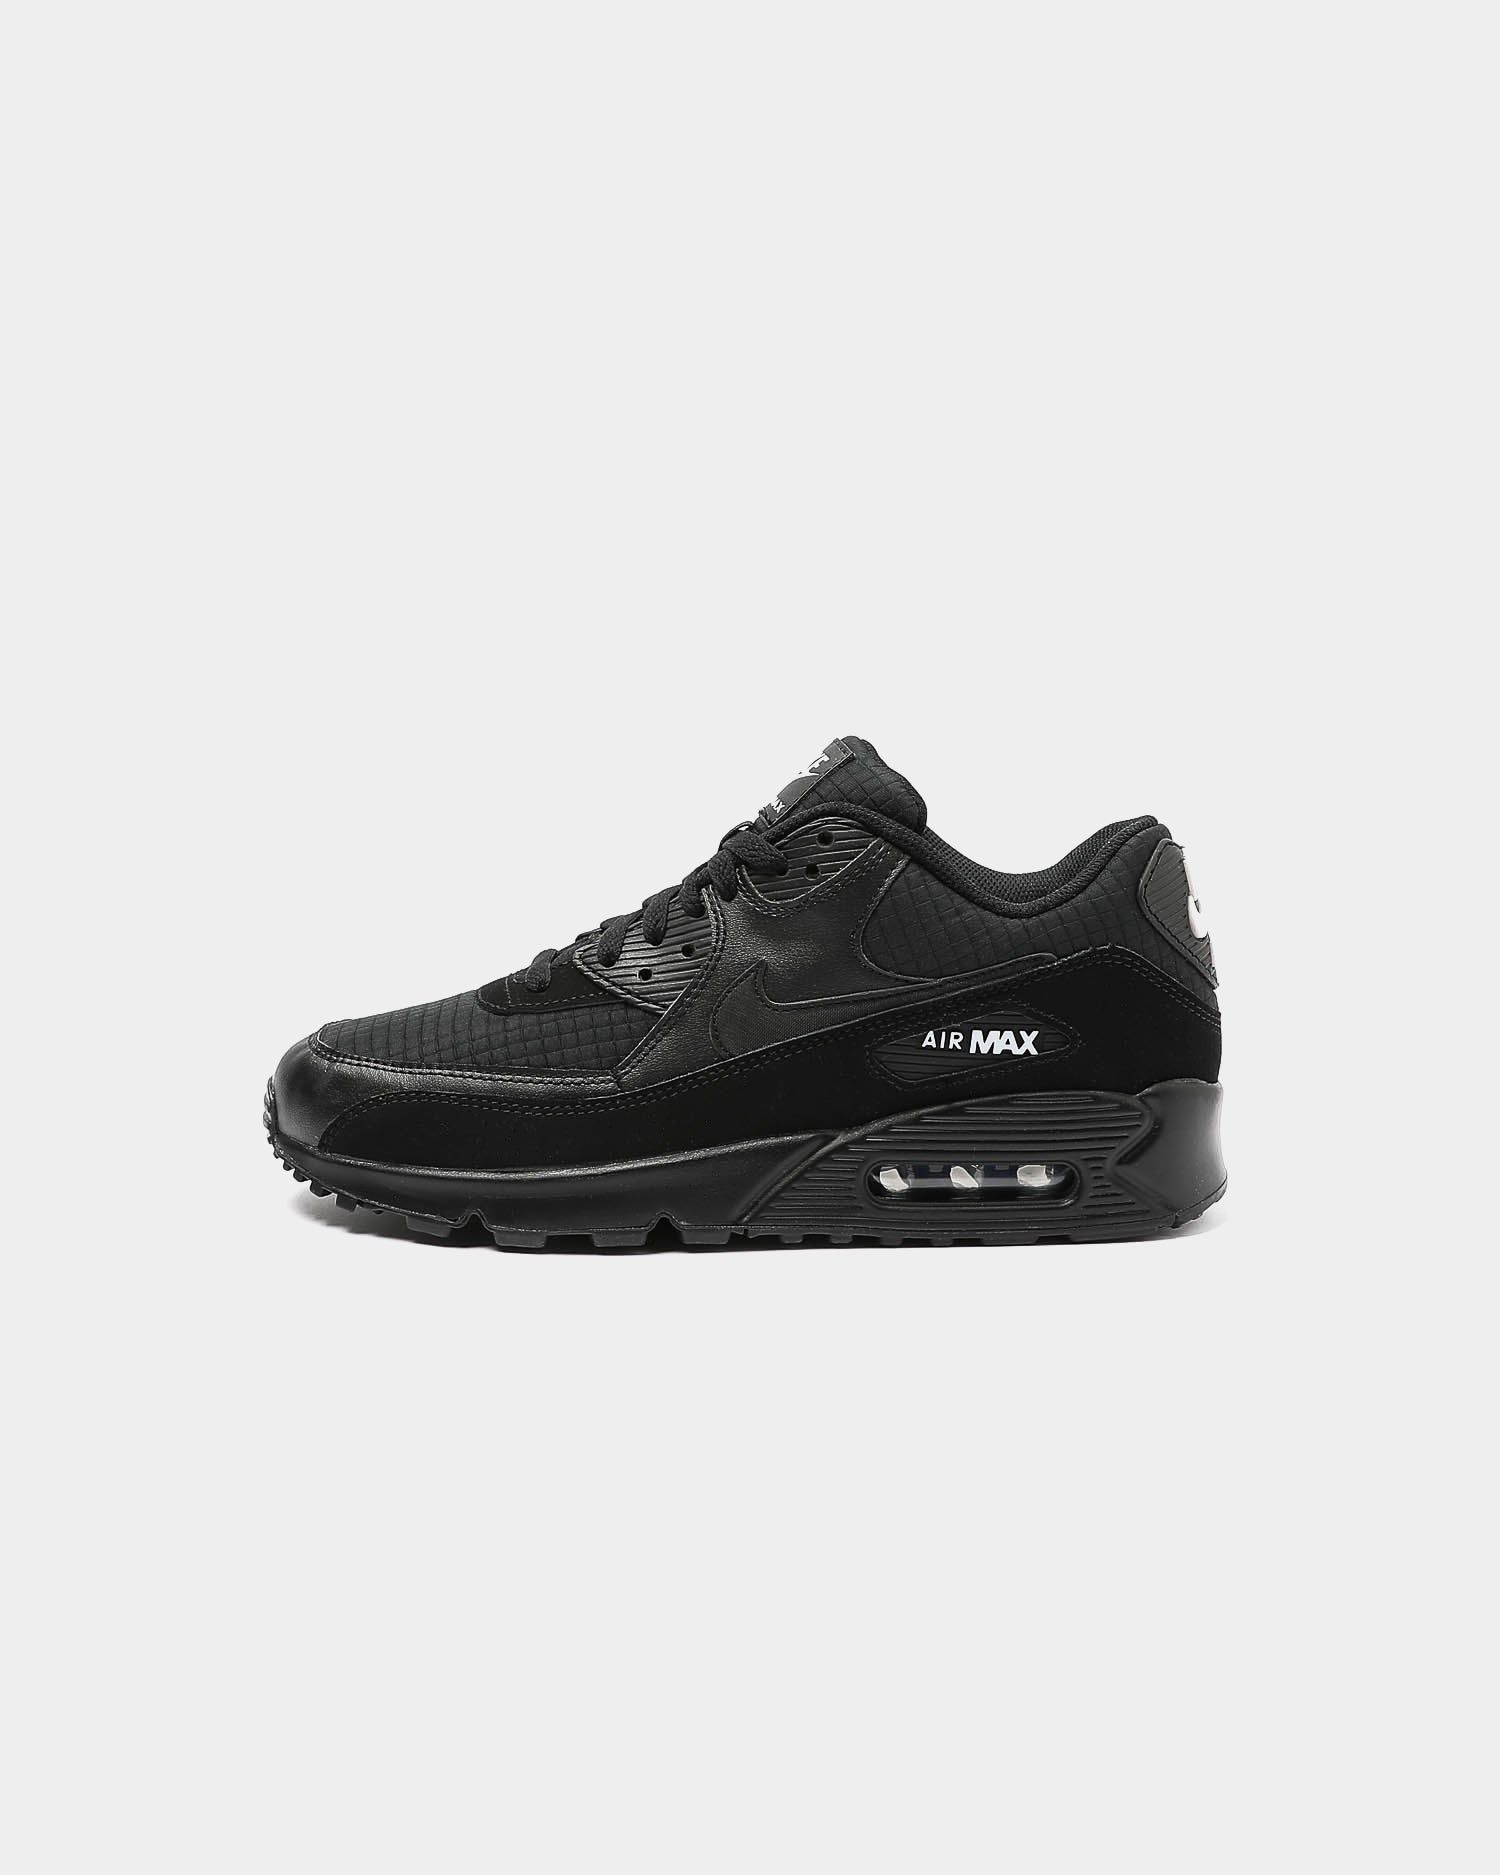 Nike NIKE Air Max 90 essential sneakers men AIR MAX 90 ESSENTIAL AJ1285 015 black